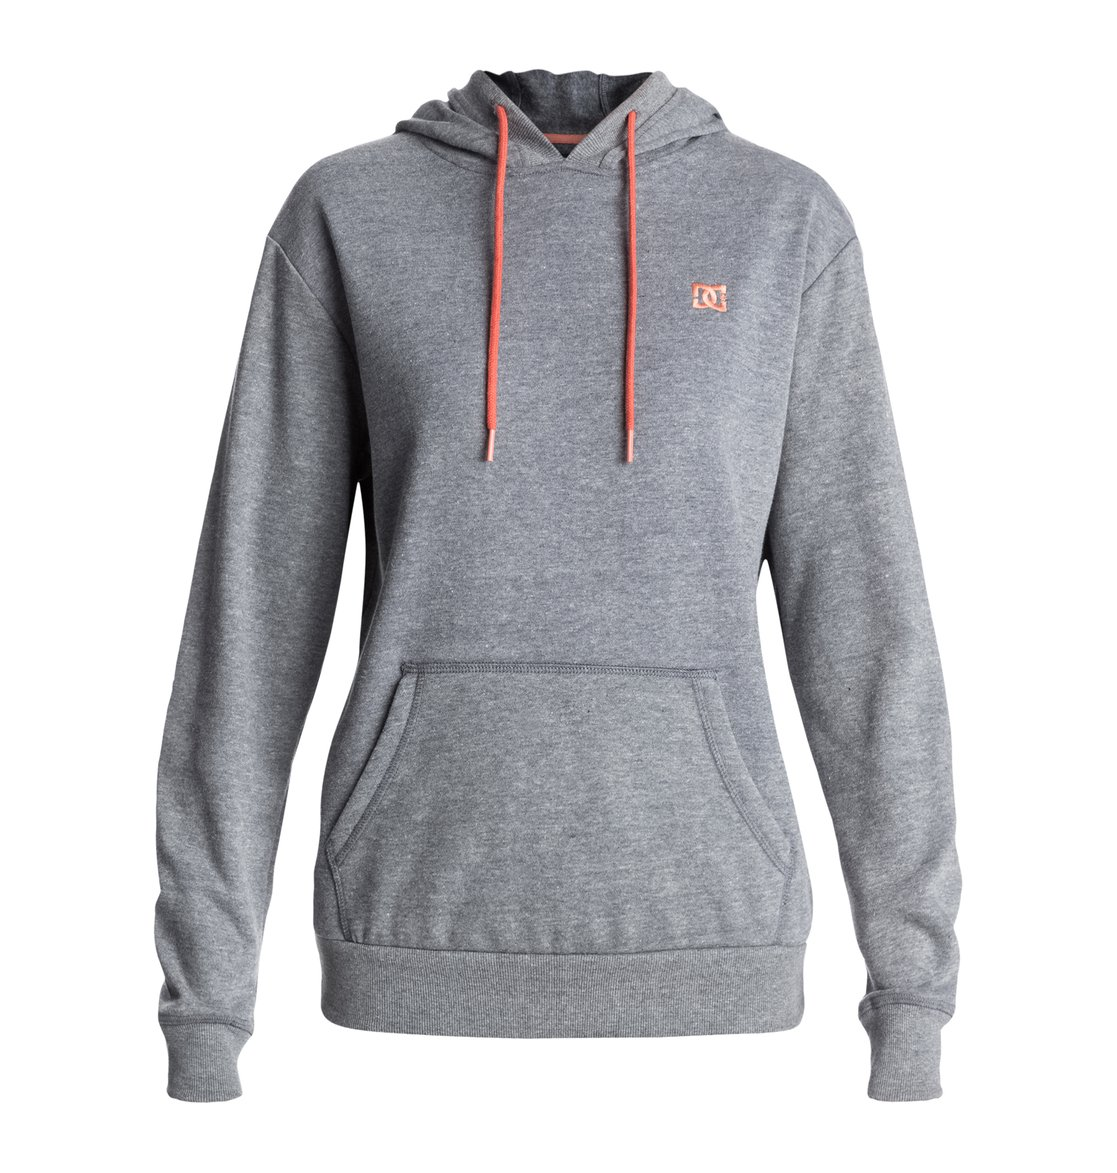 Rebel Star Pullover 2 - Dcshoes������� �������-������� Rebel Star Ph 2 �� DC Shoes � ������� �� ��������� ����� 2015. ��������������: ������������� �� ������ � ���������� � ������ ��������, ����������� ������� ��������� �����, ����������� ������� � ��������� DC.<br>